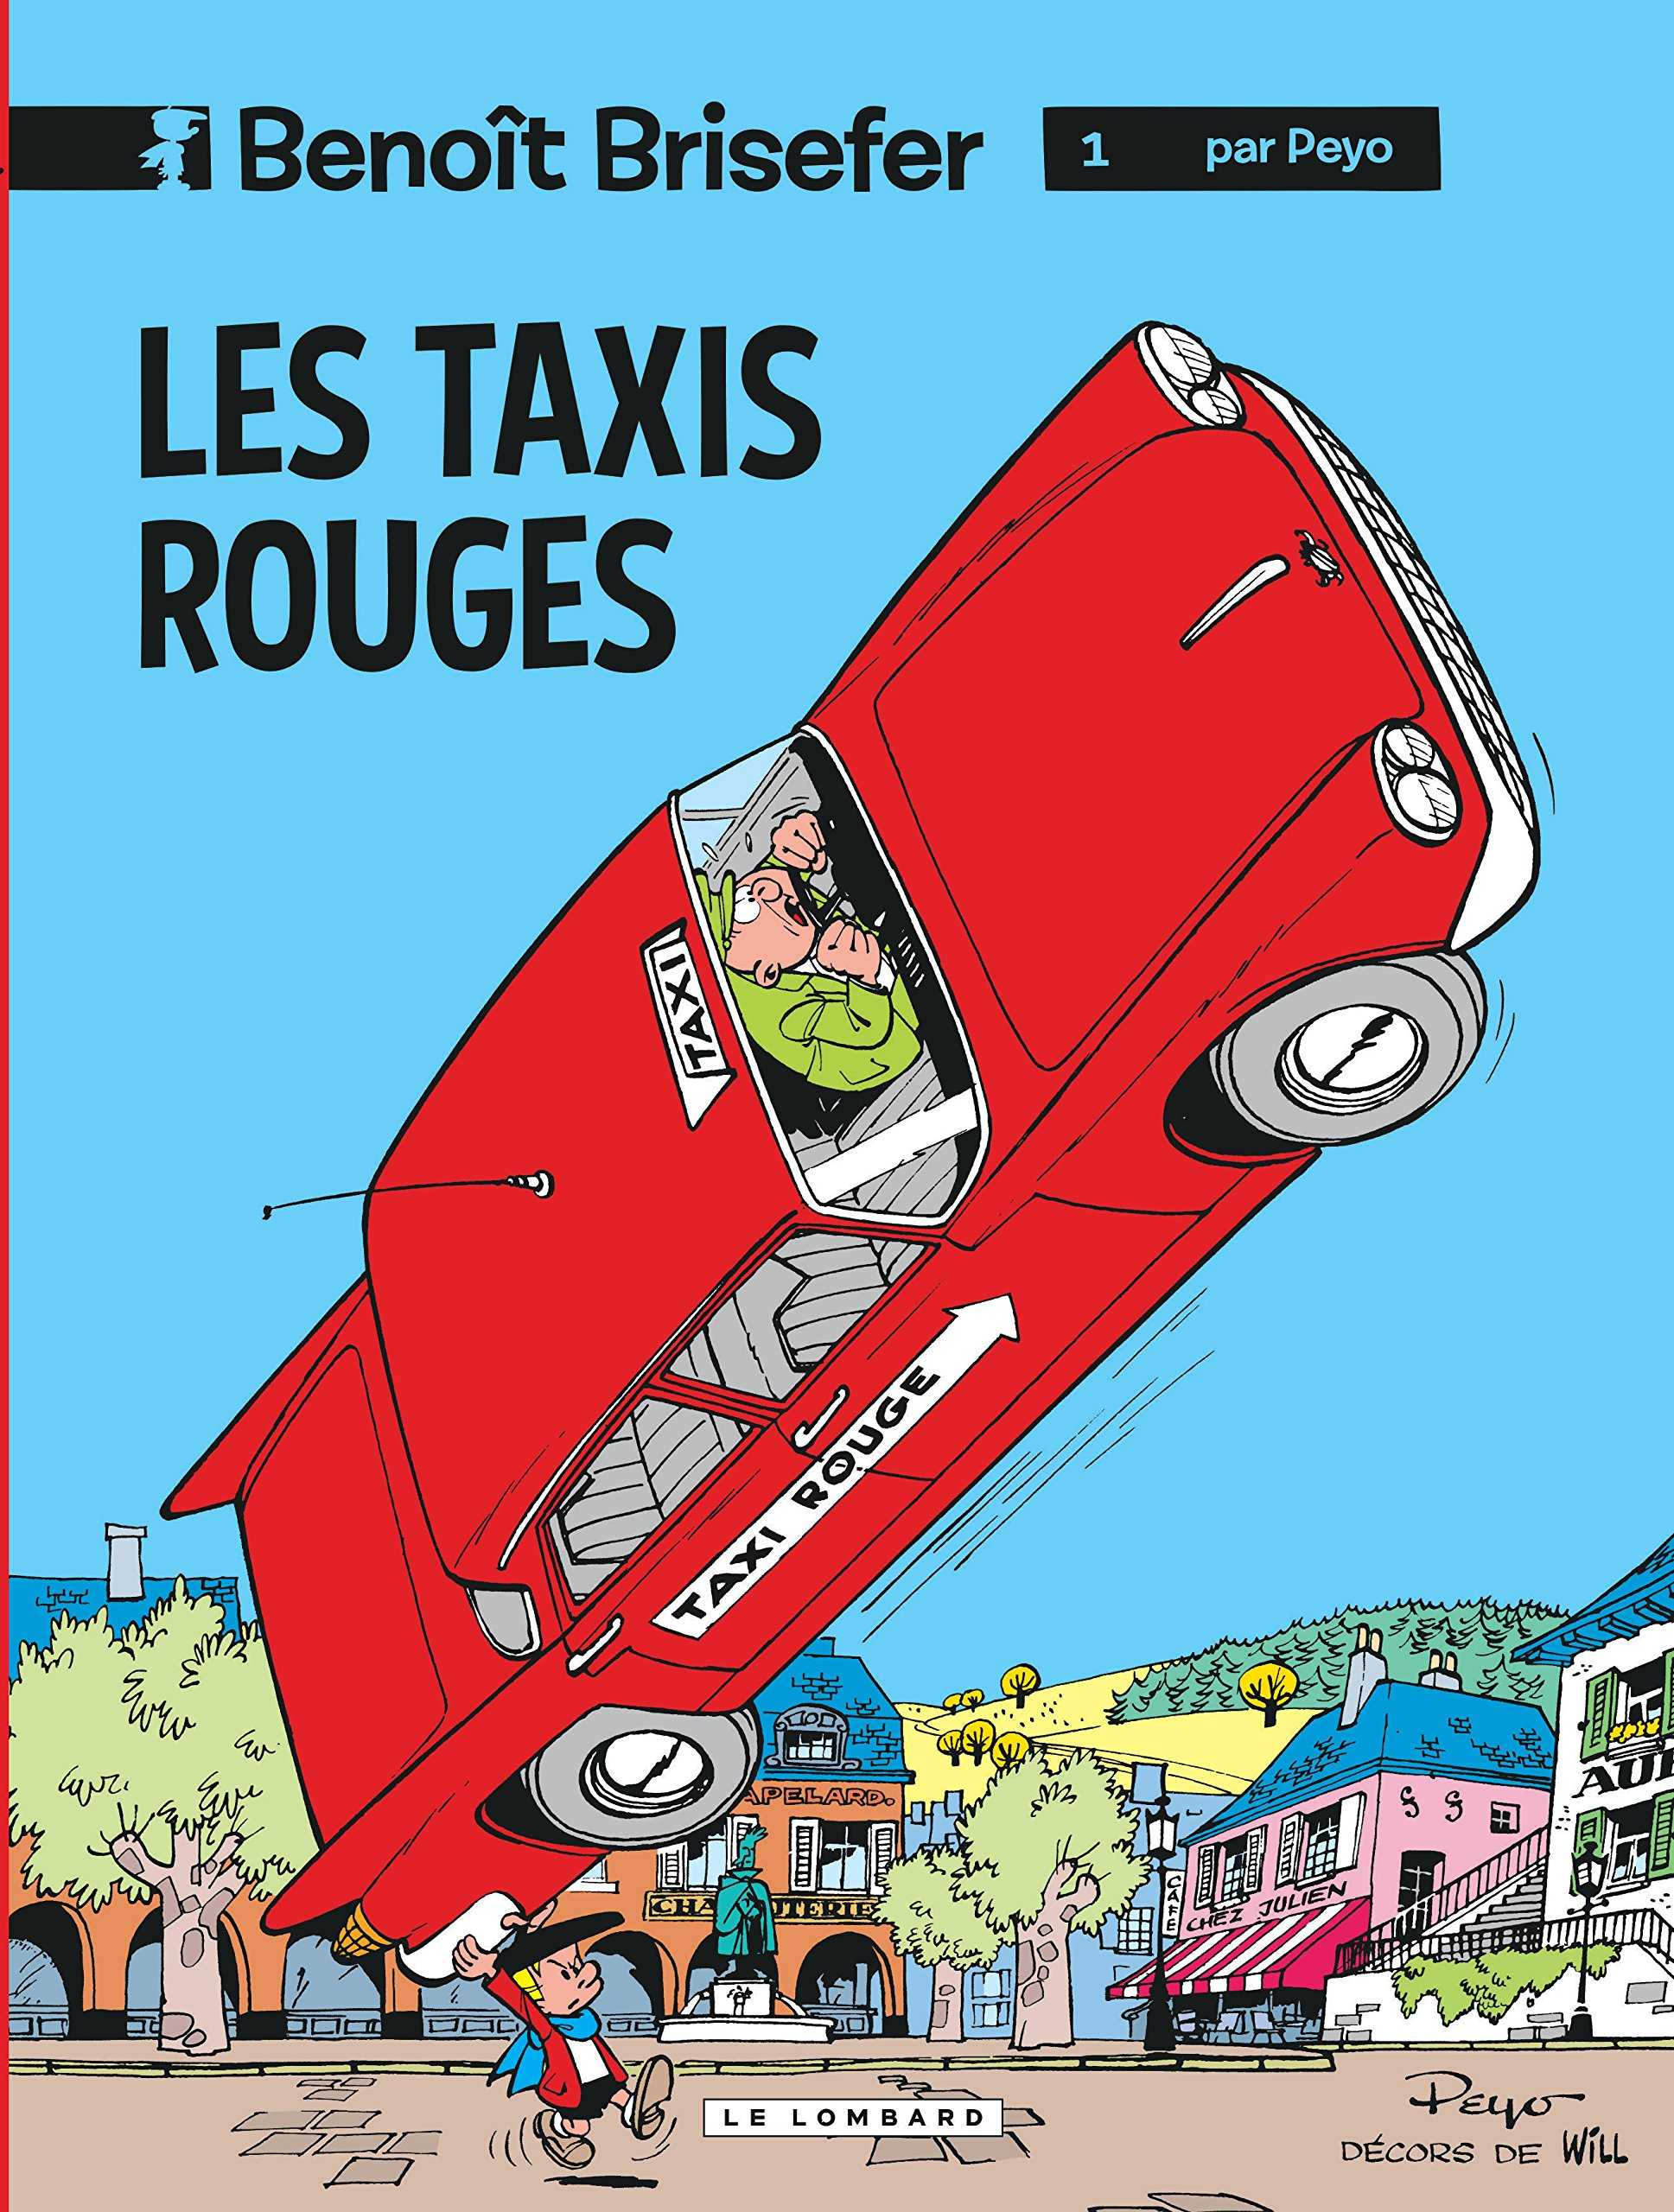 benoit brisefer les taxis rouges film